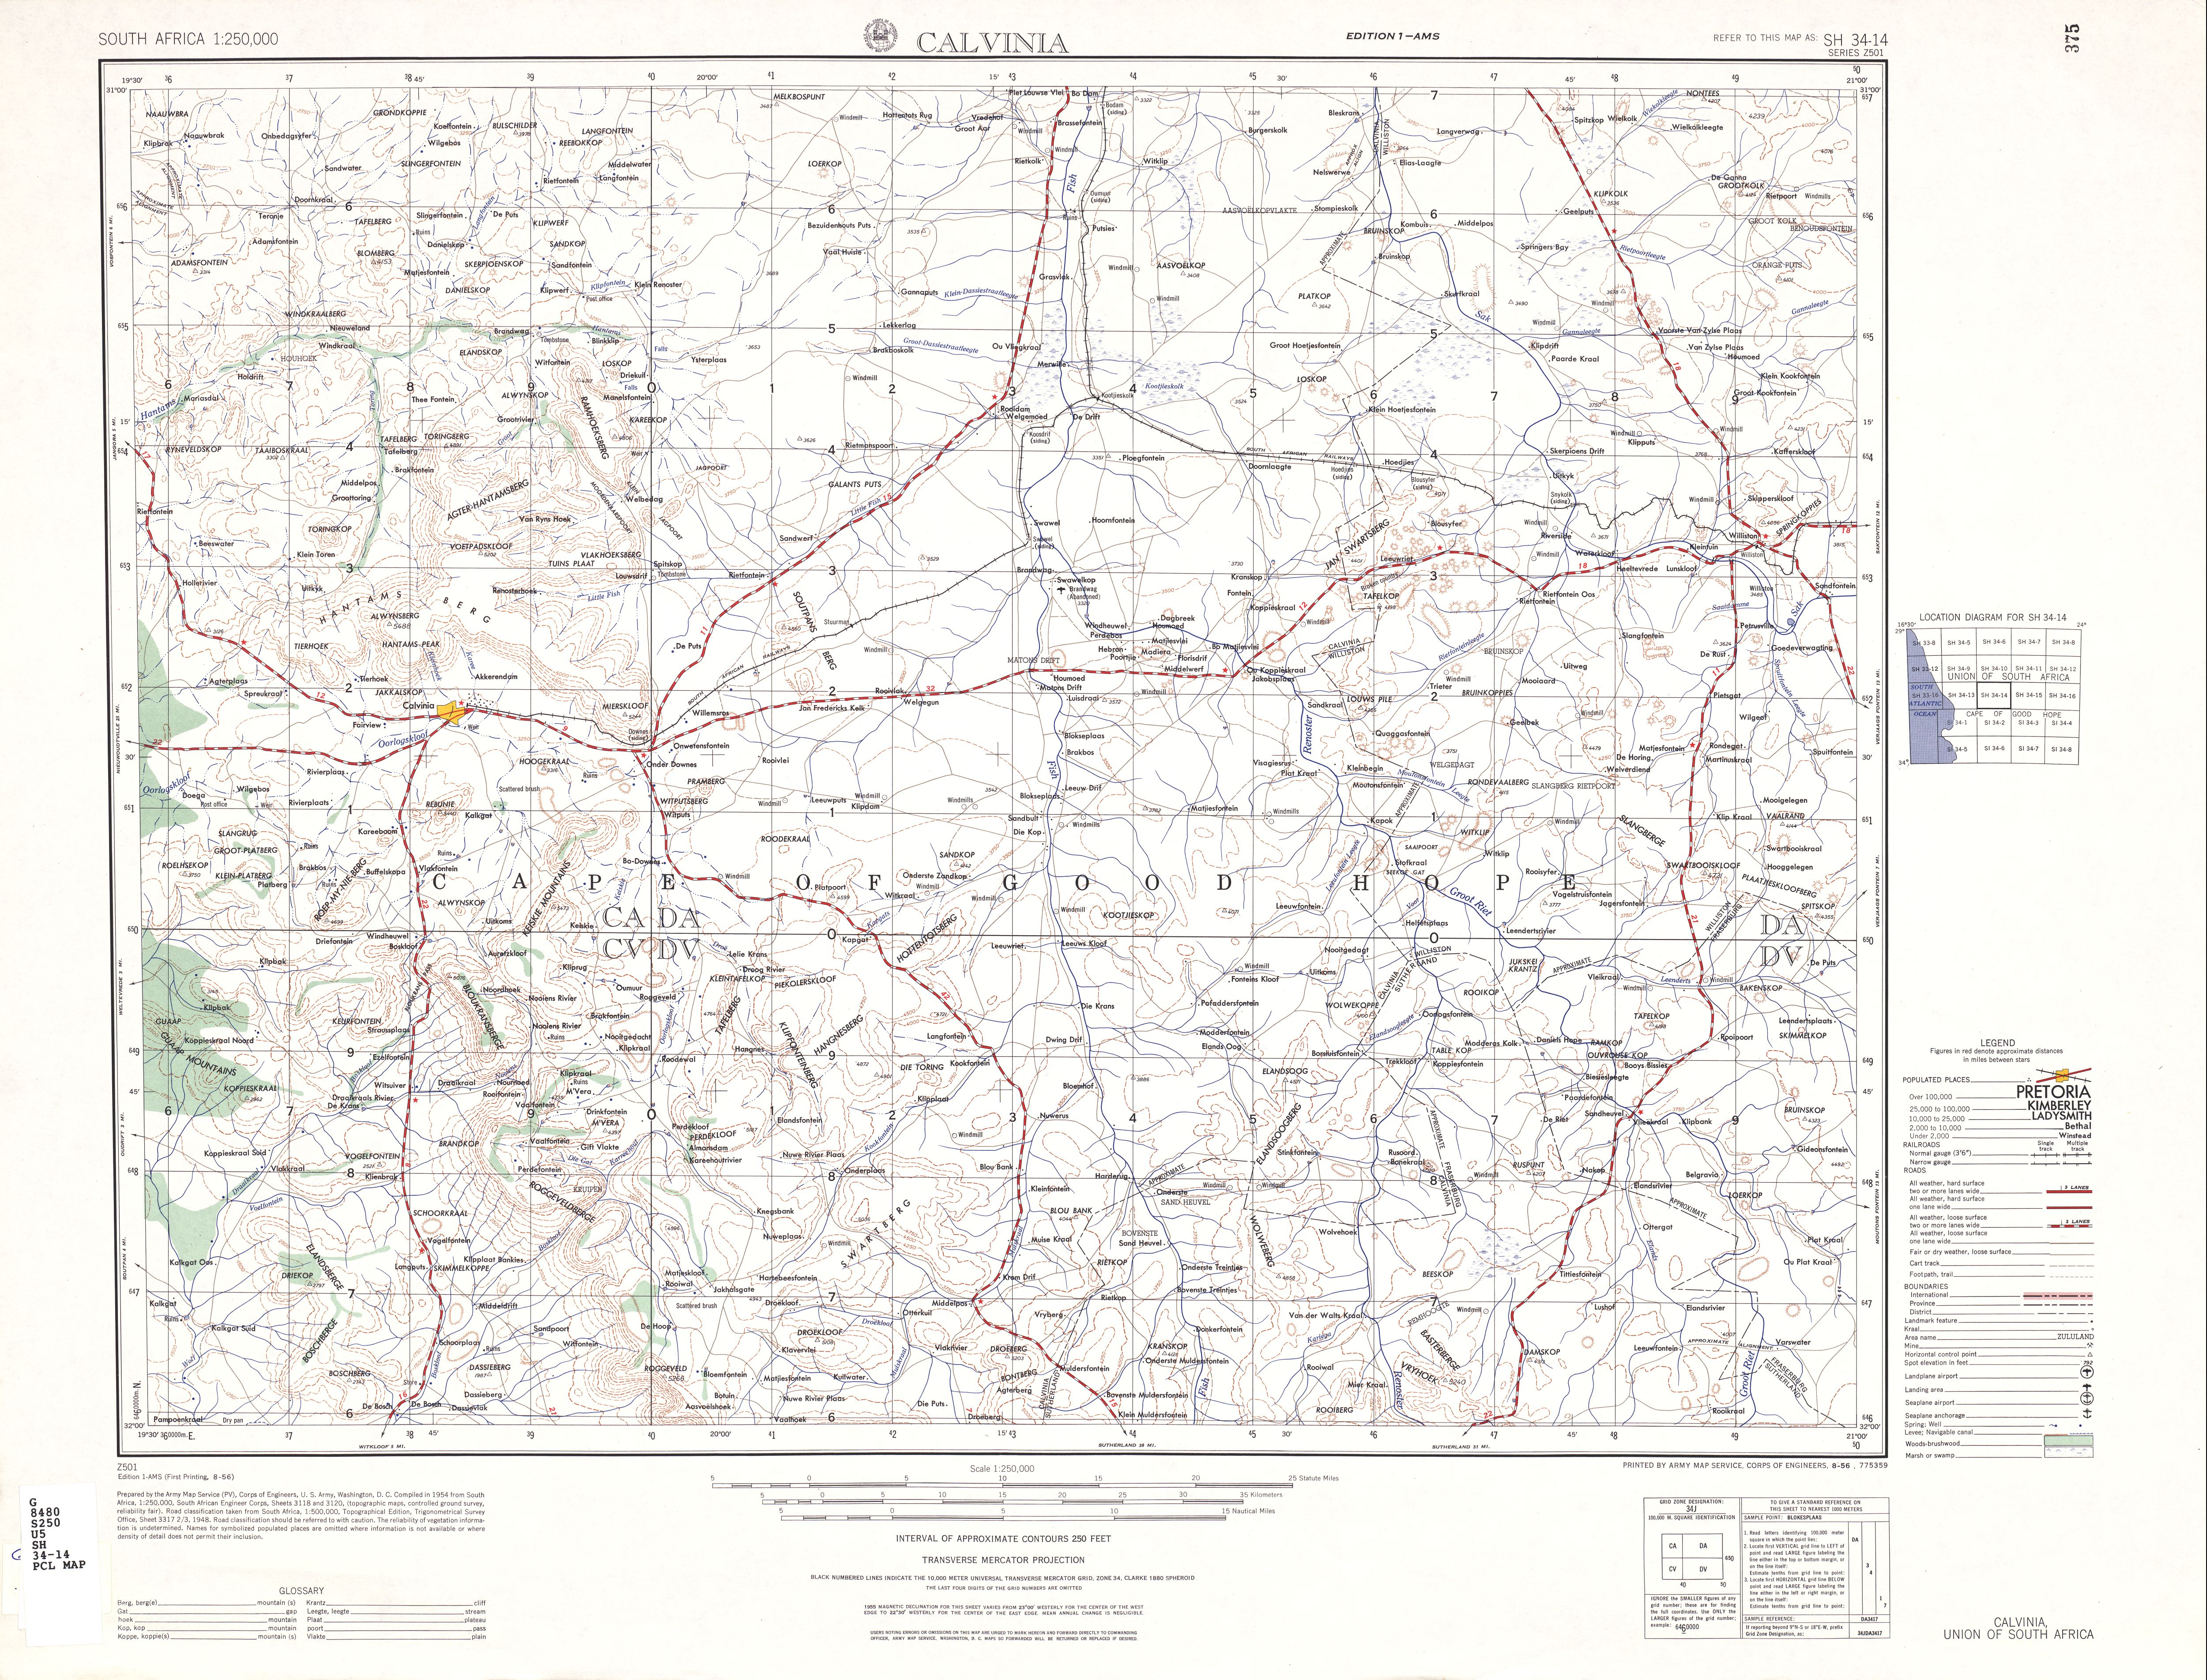 Calvinia Topographic Map Sheet, Southern Africa 1954